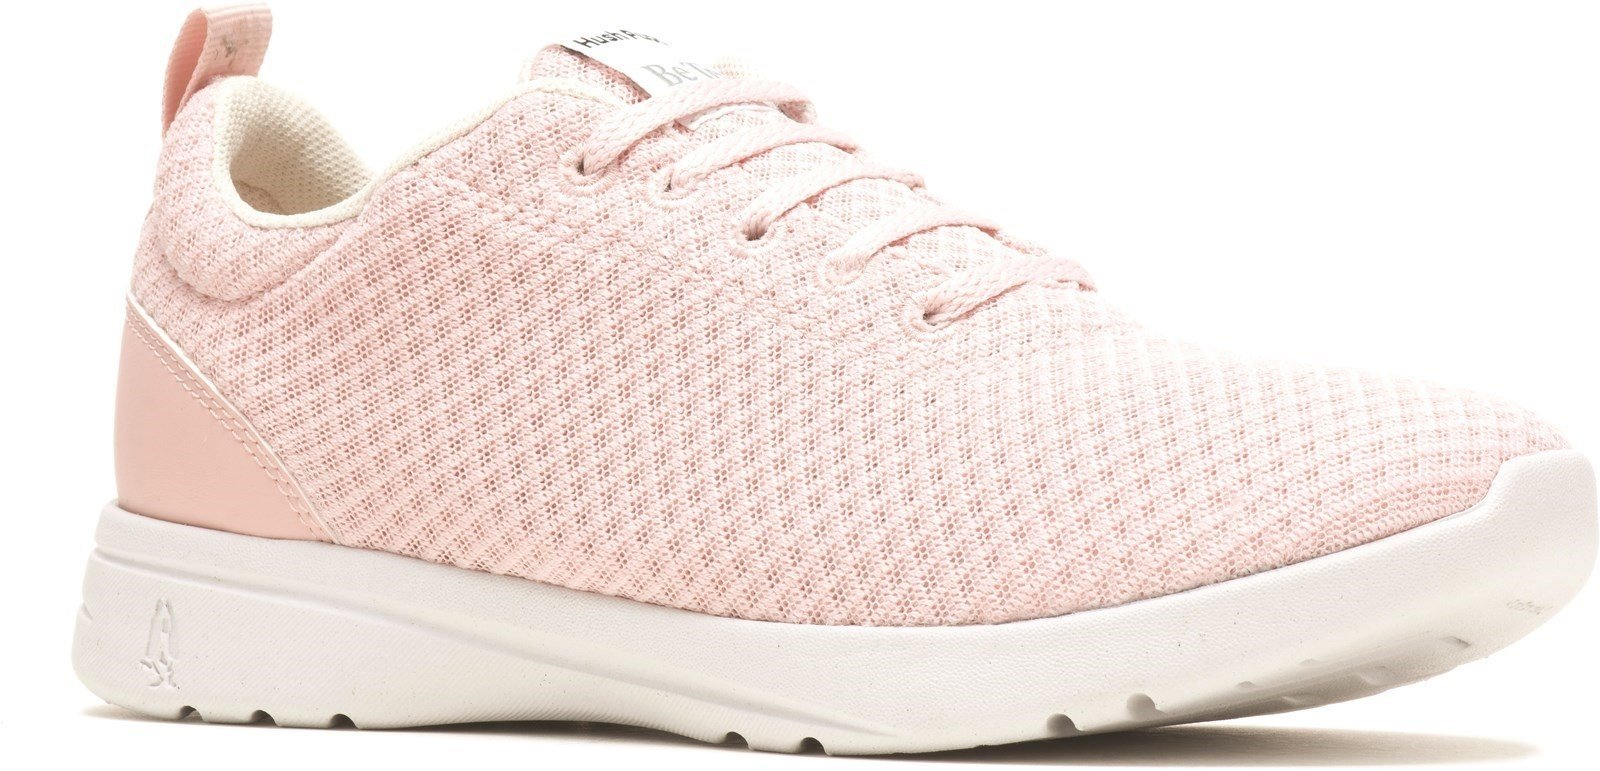 Hush Puppies Women's Good Lace Trainer Various Colours 32919 - Pink 3